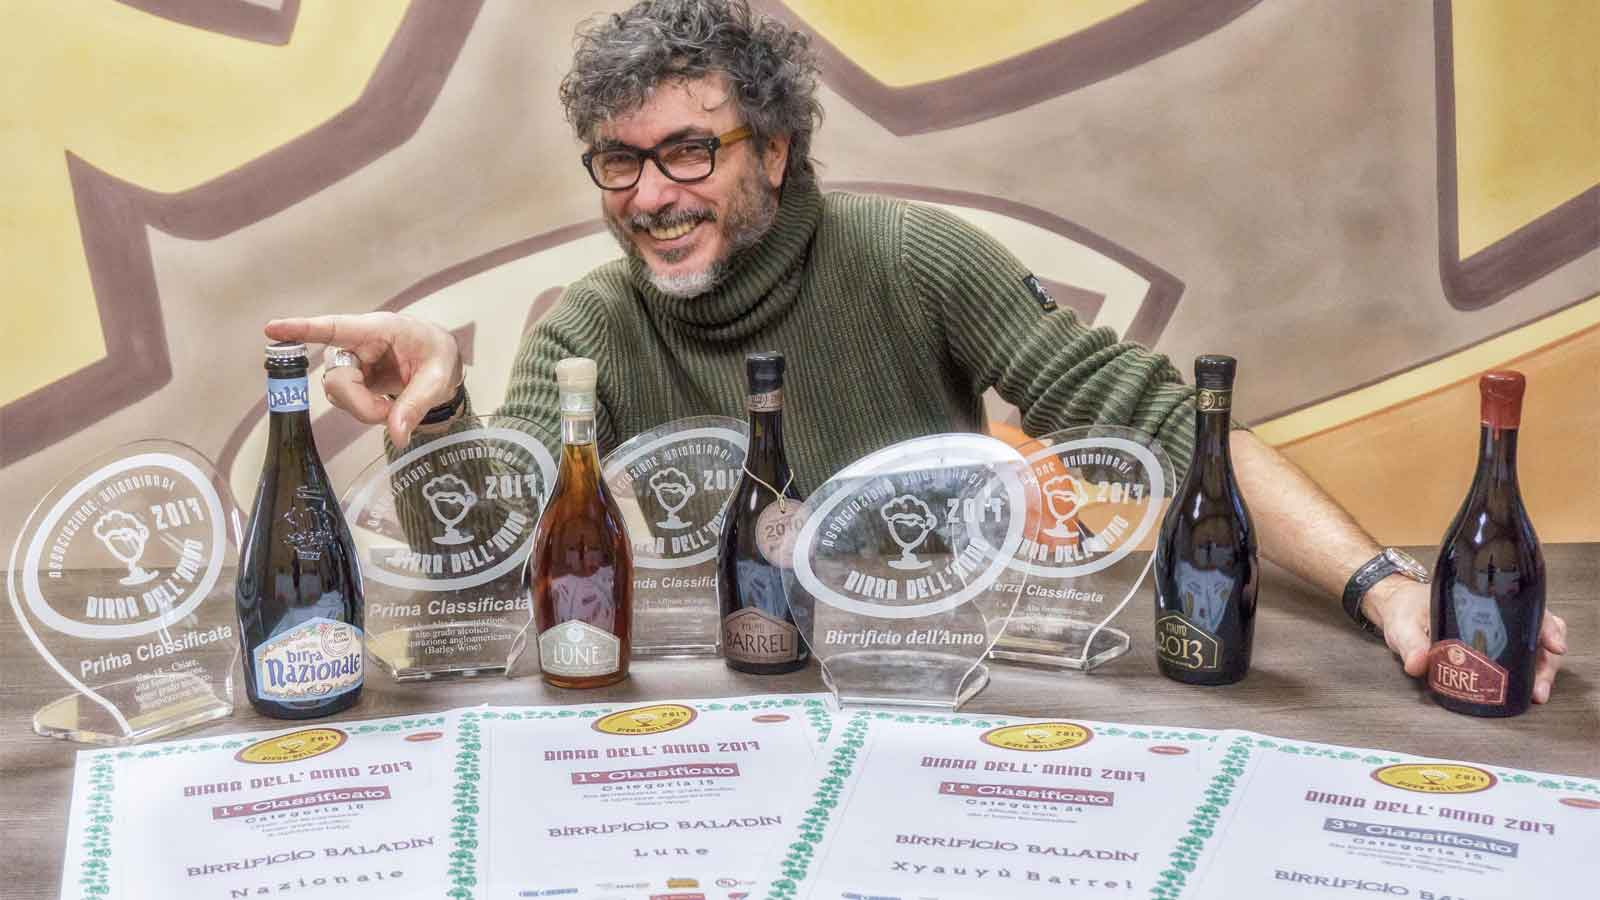 Baladin voted Brewery of the Year 2017 by Unionbirrai